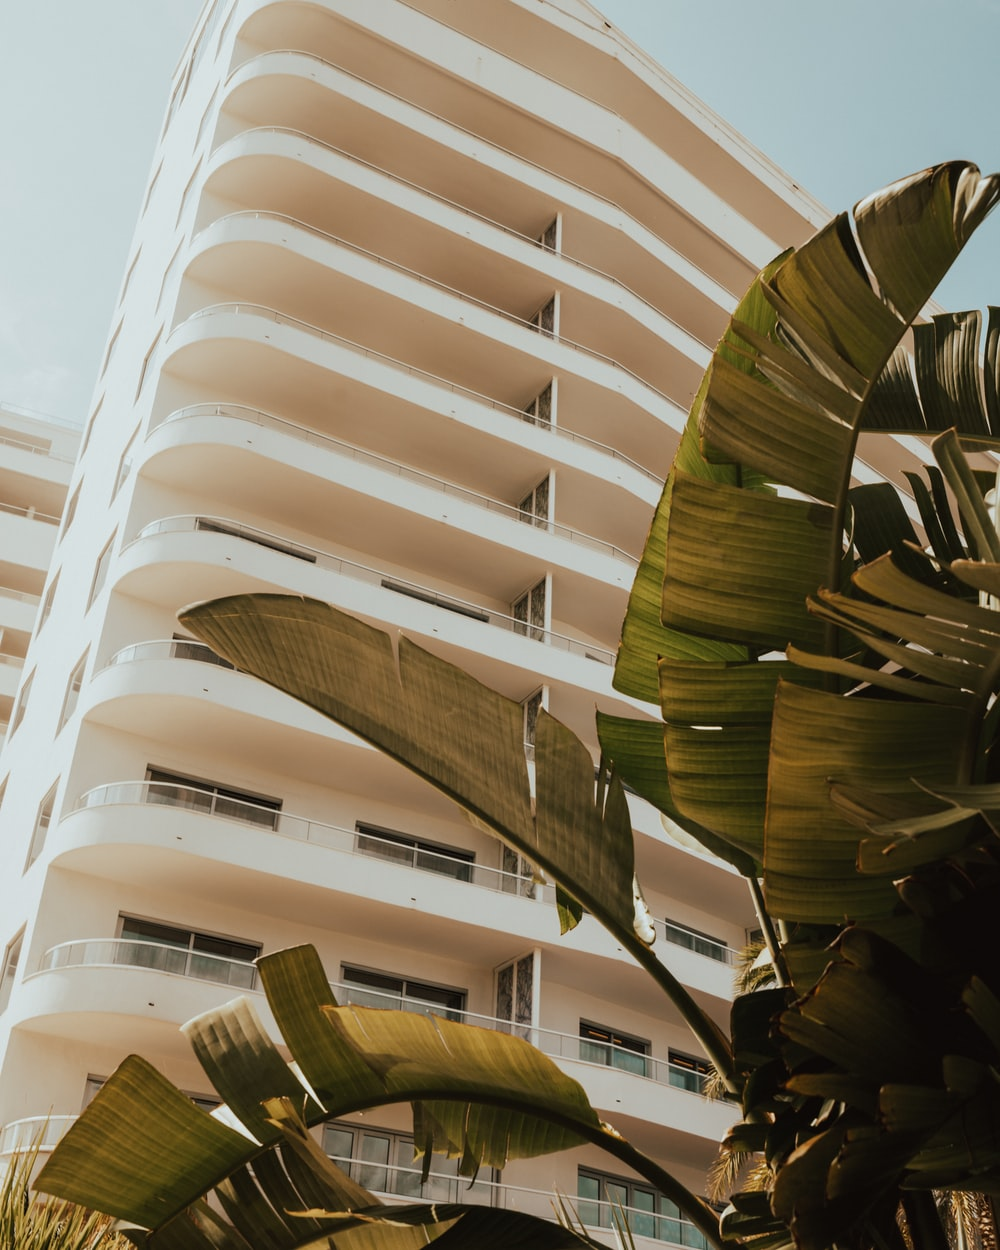 green traveler palm tree in front of white high rise tenement building